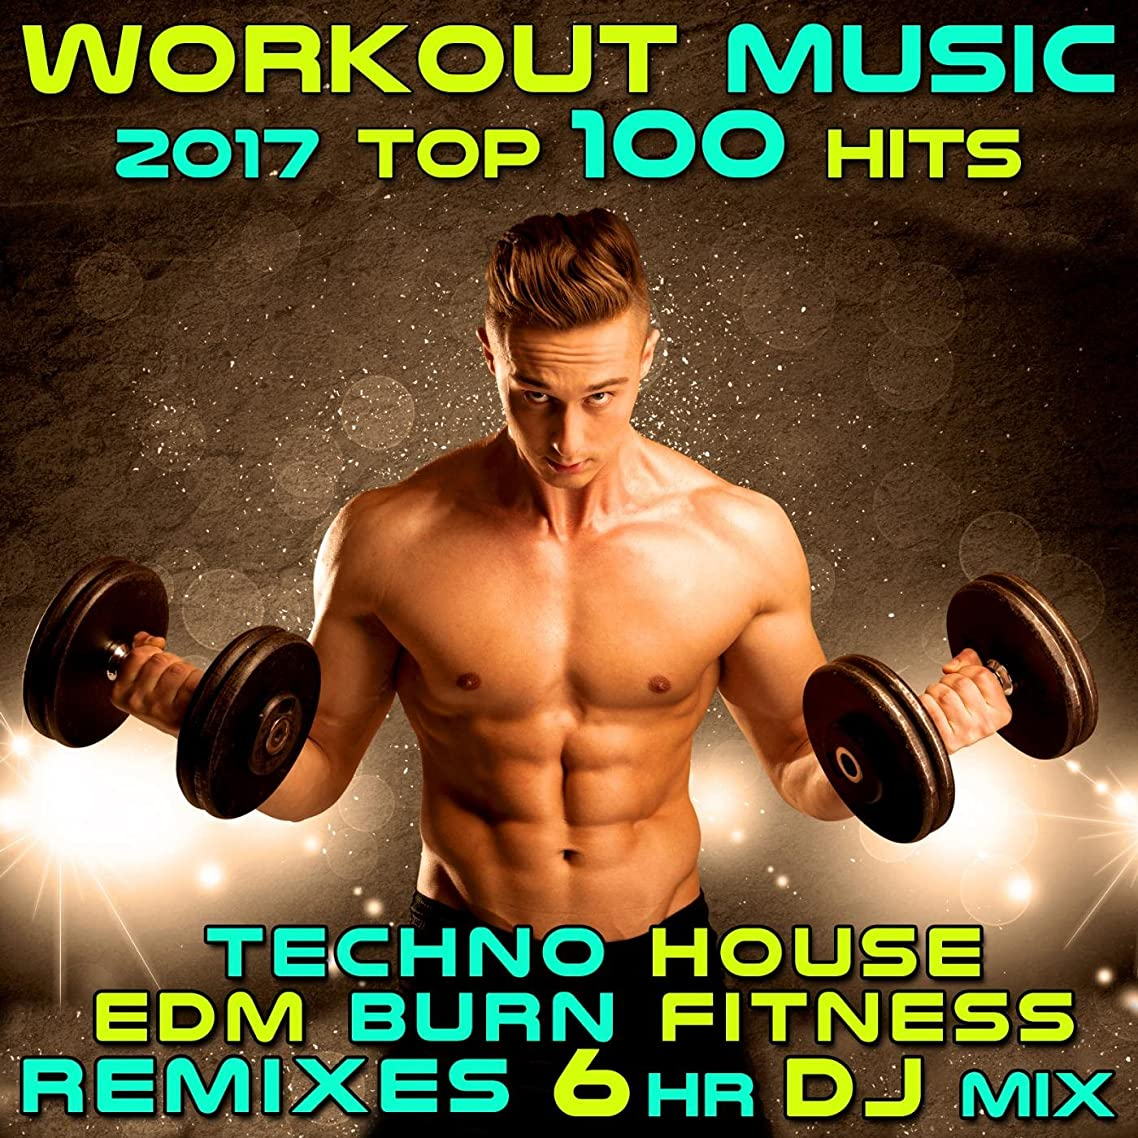 Athlean-X, Pt. 25 (125 BPM Workout Music Top Hits DJ Mix)